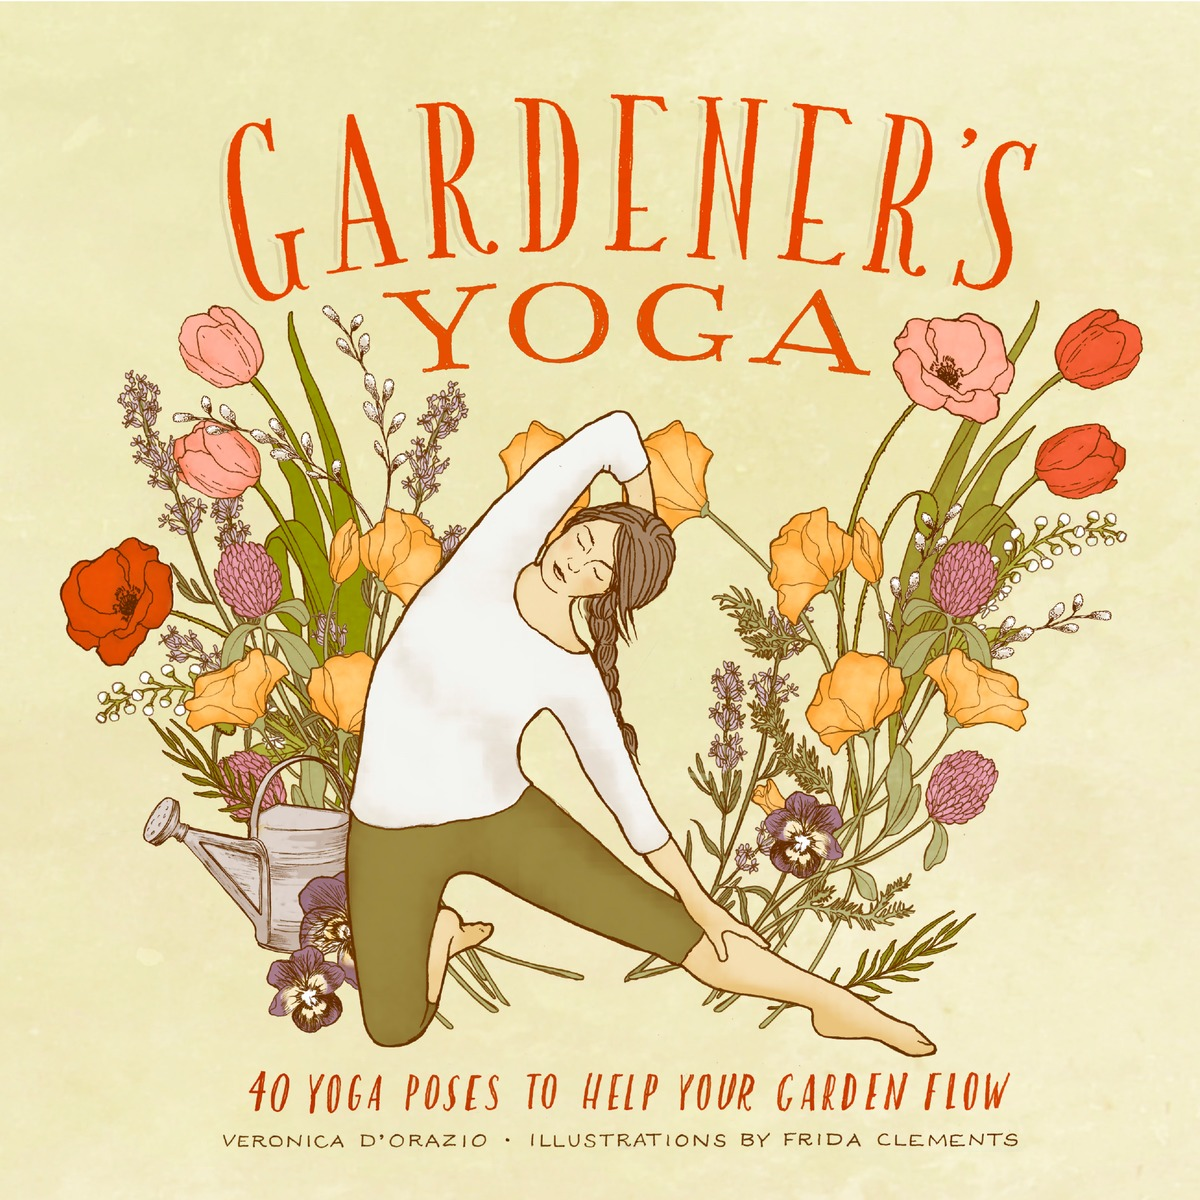 Gardener's Yoga: 40 Yoga Poses to Help Your Garden Flow solong tattoo complete tattoo kit set including tattoo machine gun inks power supply needles permanent makeup for liner